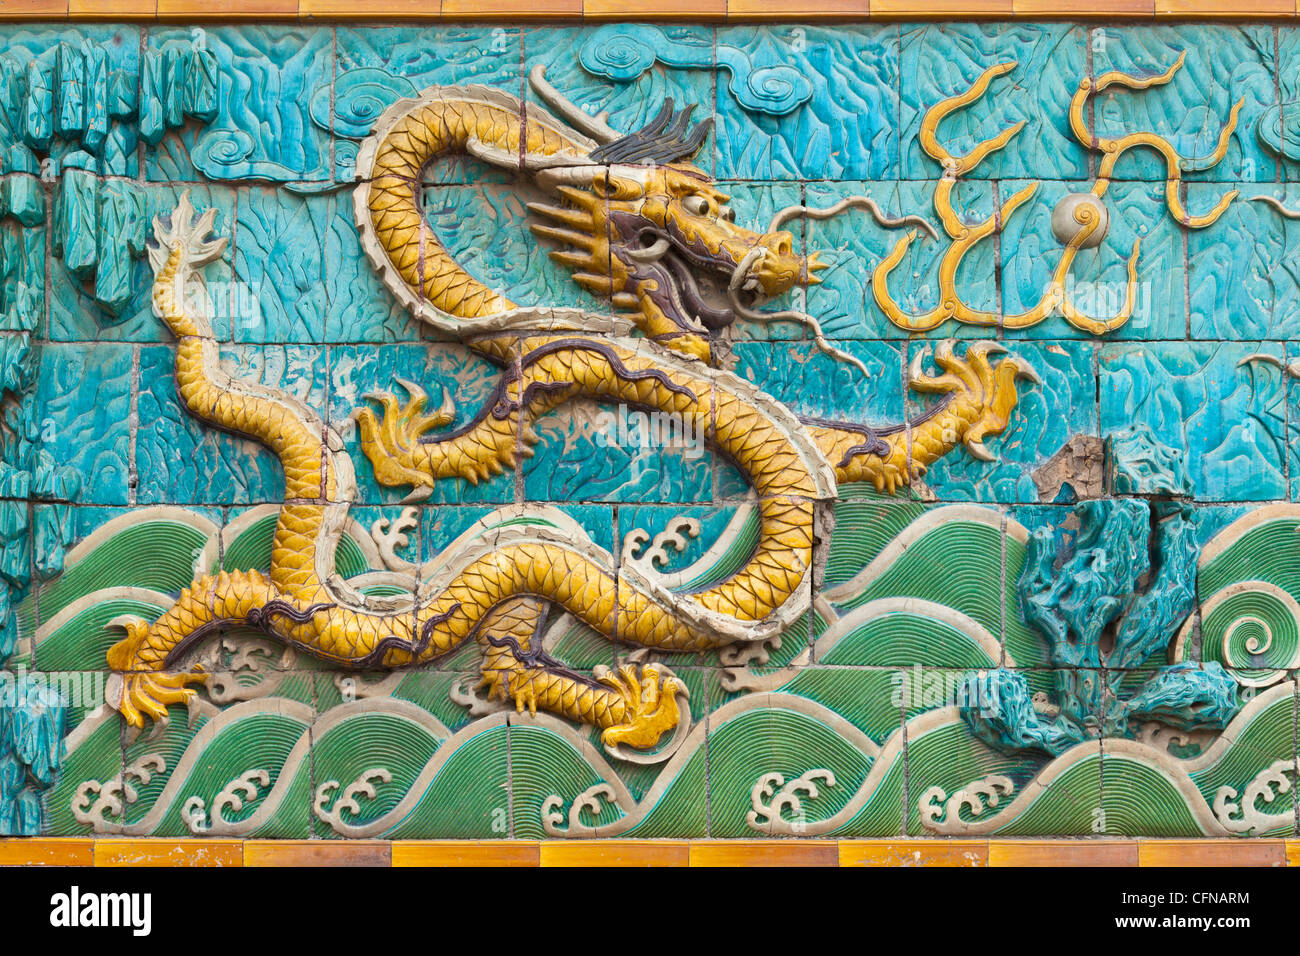 Detail of the Nine Dragons Screen, Palace of Tranquility and Longevity, Forbidden City, Beijing, China, Asia - Stock Image